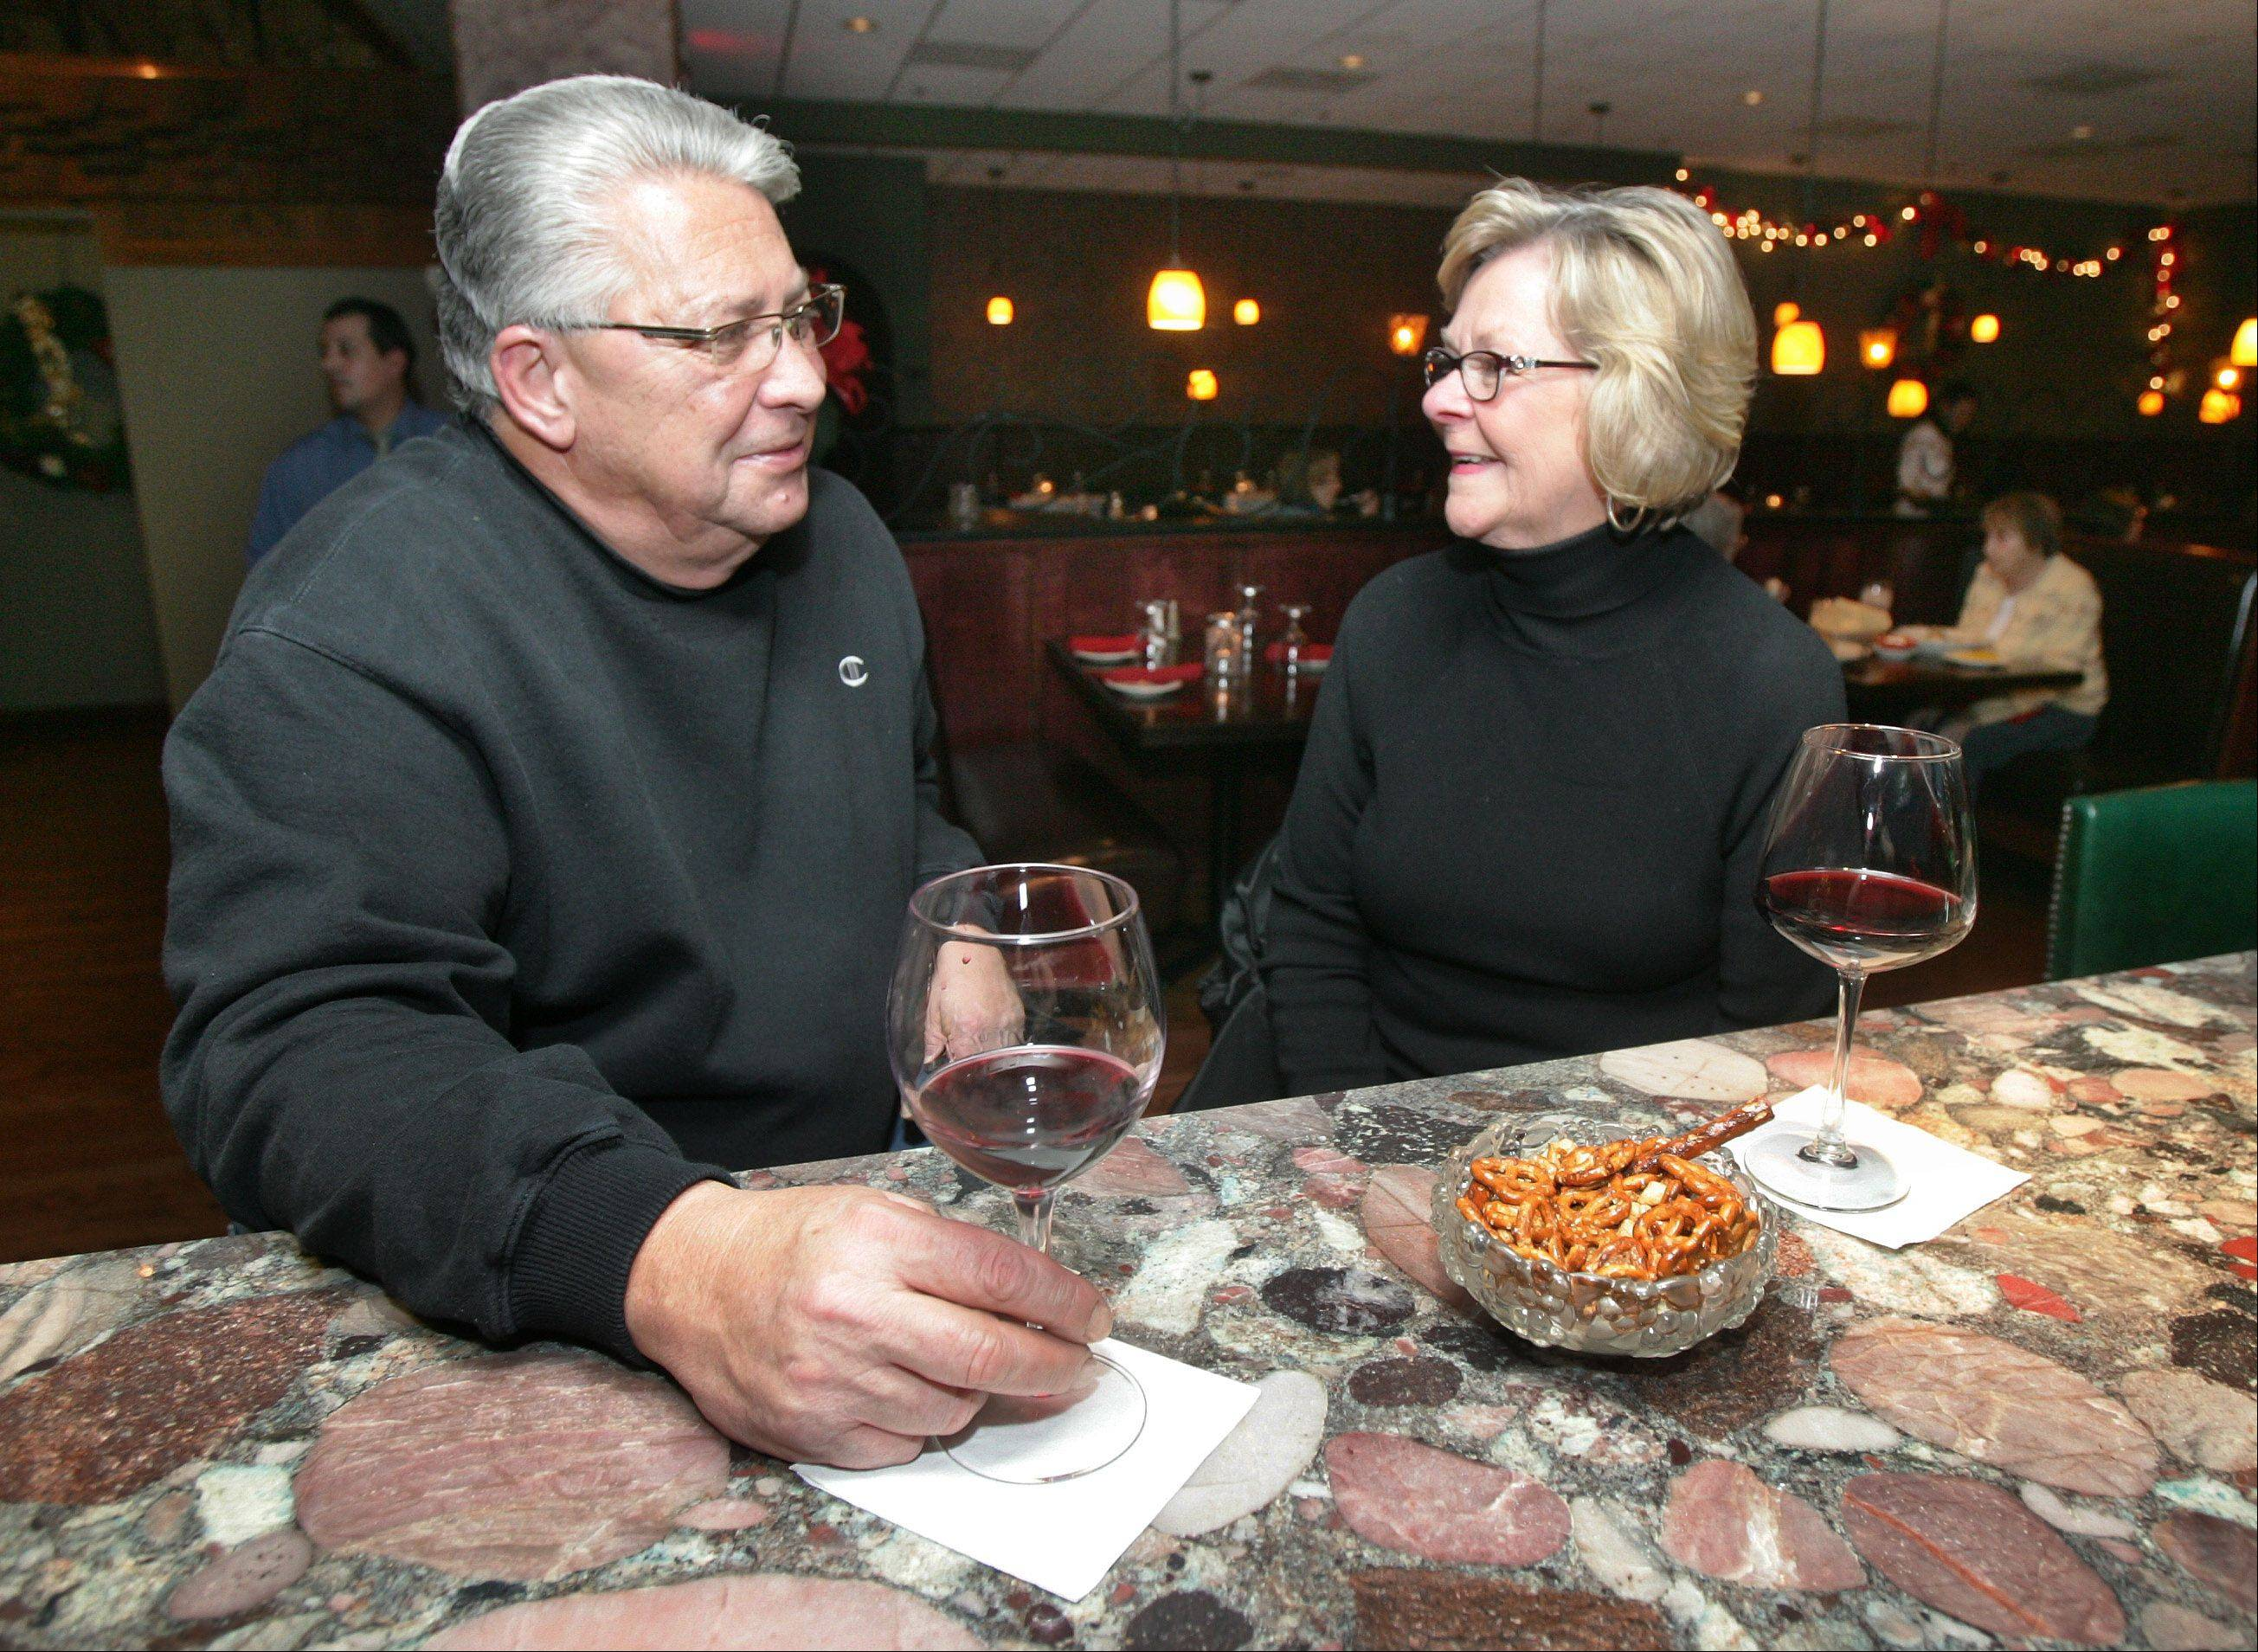 John and Jann Coroneos of Libertyville enjoy glasses of wine at Bodega Grill & Wine Lounge in Gurnee.